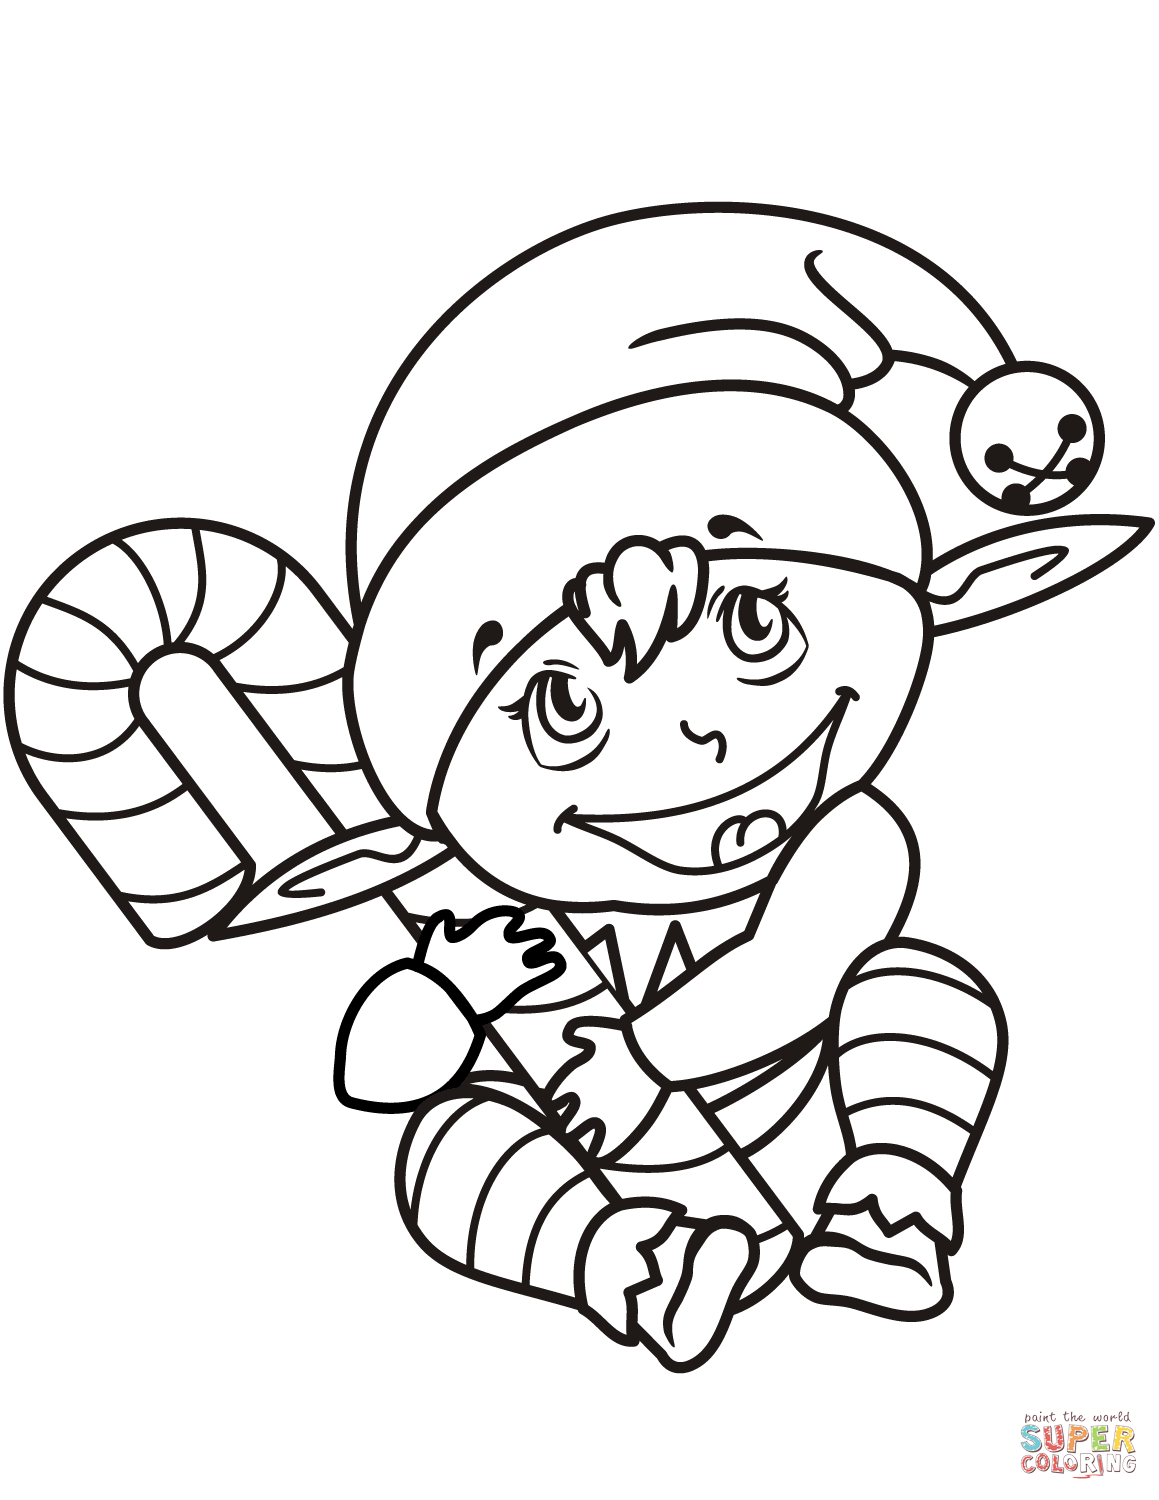 Cute Christmas Elf With Candy Cane Coloring Page